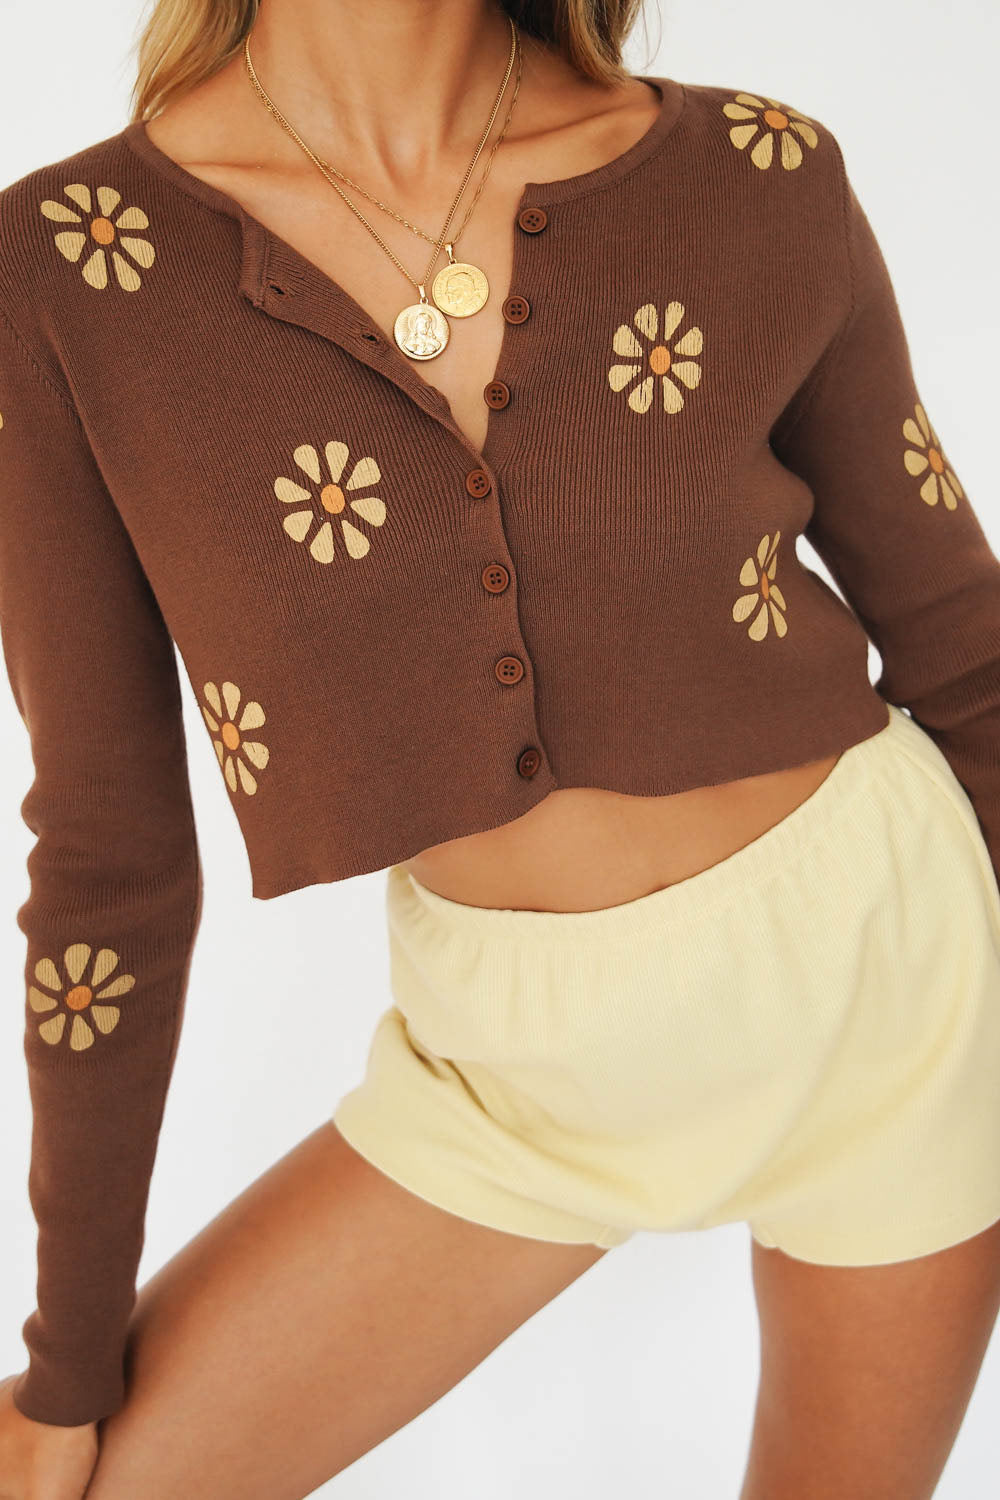 Look To The Sky Button Front Knit Top // Chocolate